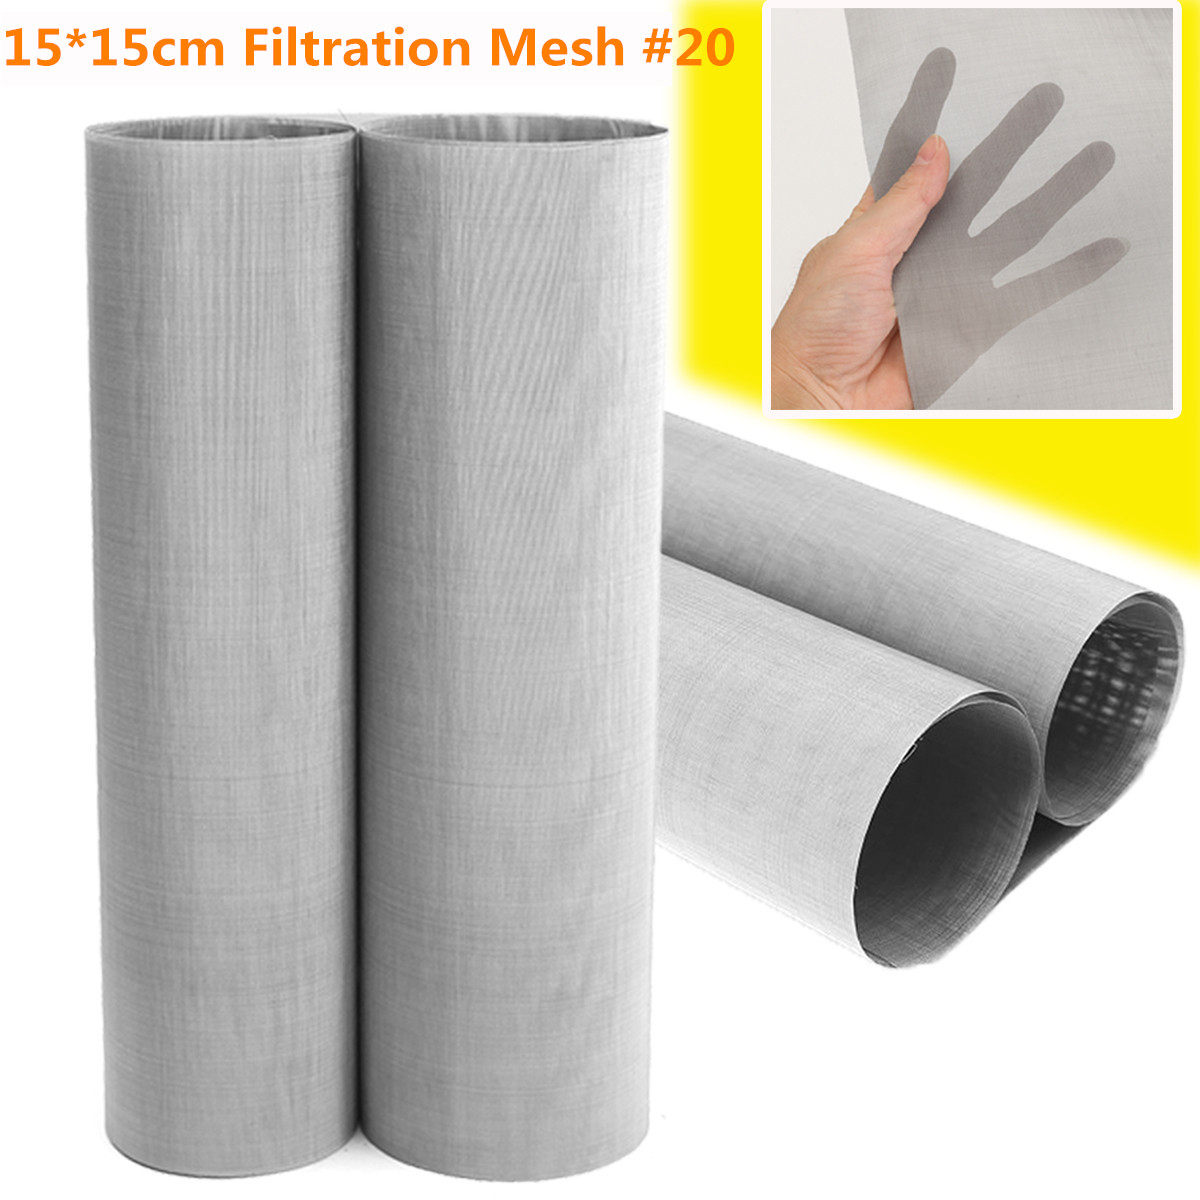 1PC 20 Mesh Woven Wire Cloth Screen Filtration 304 Stainless Steel 15x15cm with High Temperature Resistance